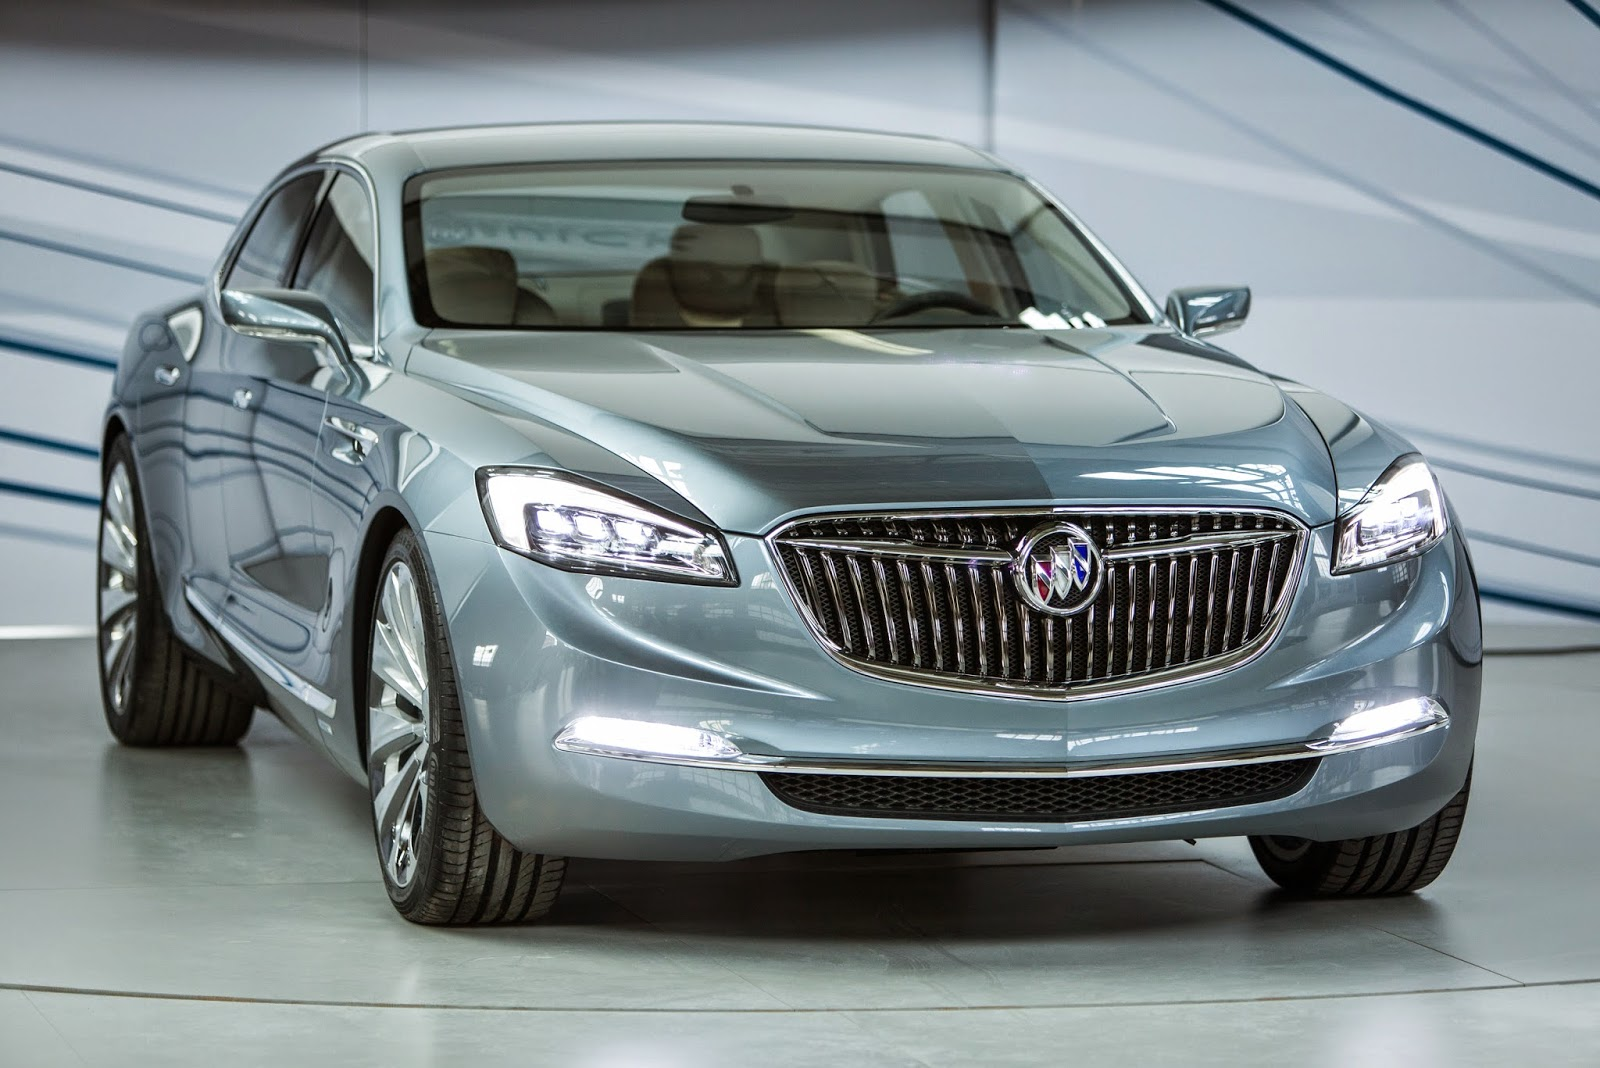 Buick Avenir Concept Car Debut at the Detroit Auto Show